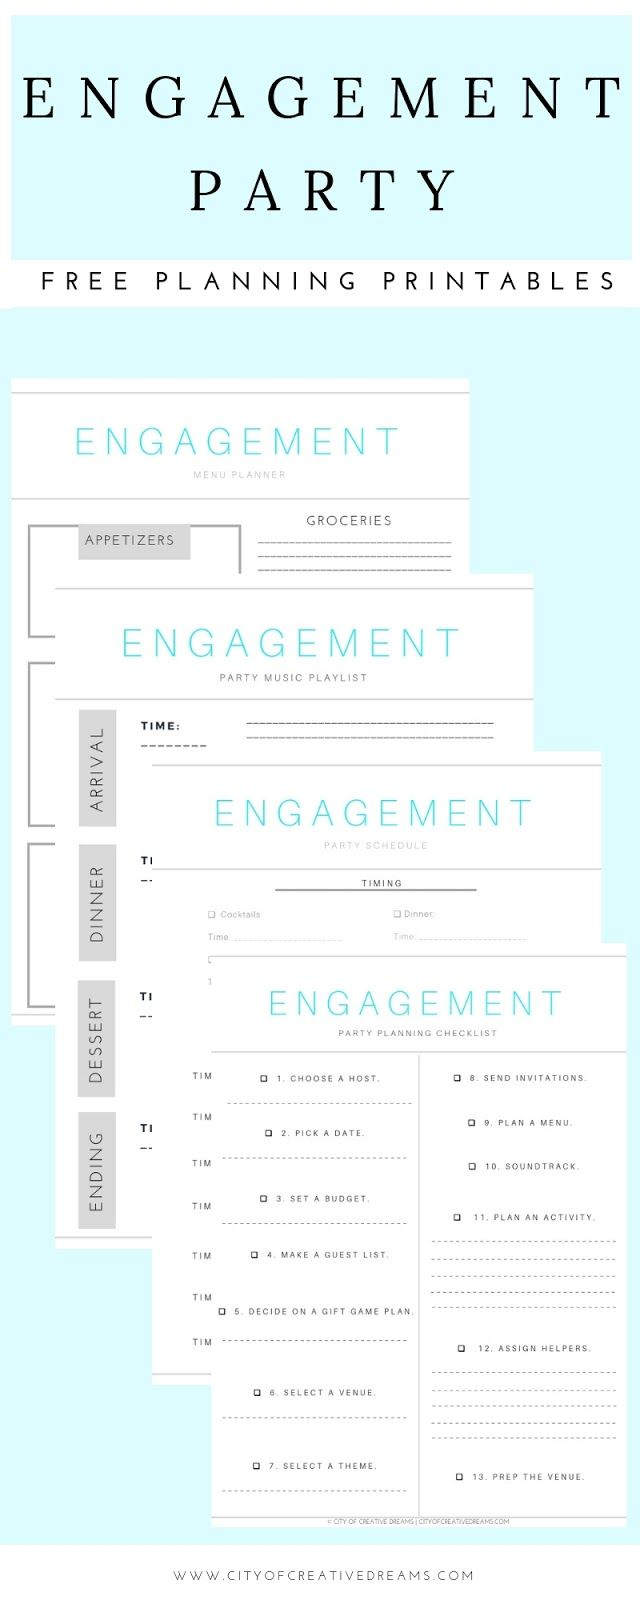 Ultimate Engagement Party Planning Checklists City Of Creative Dreams Engaged Now What Checklist Ideas